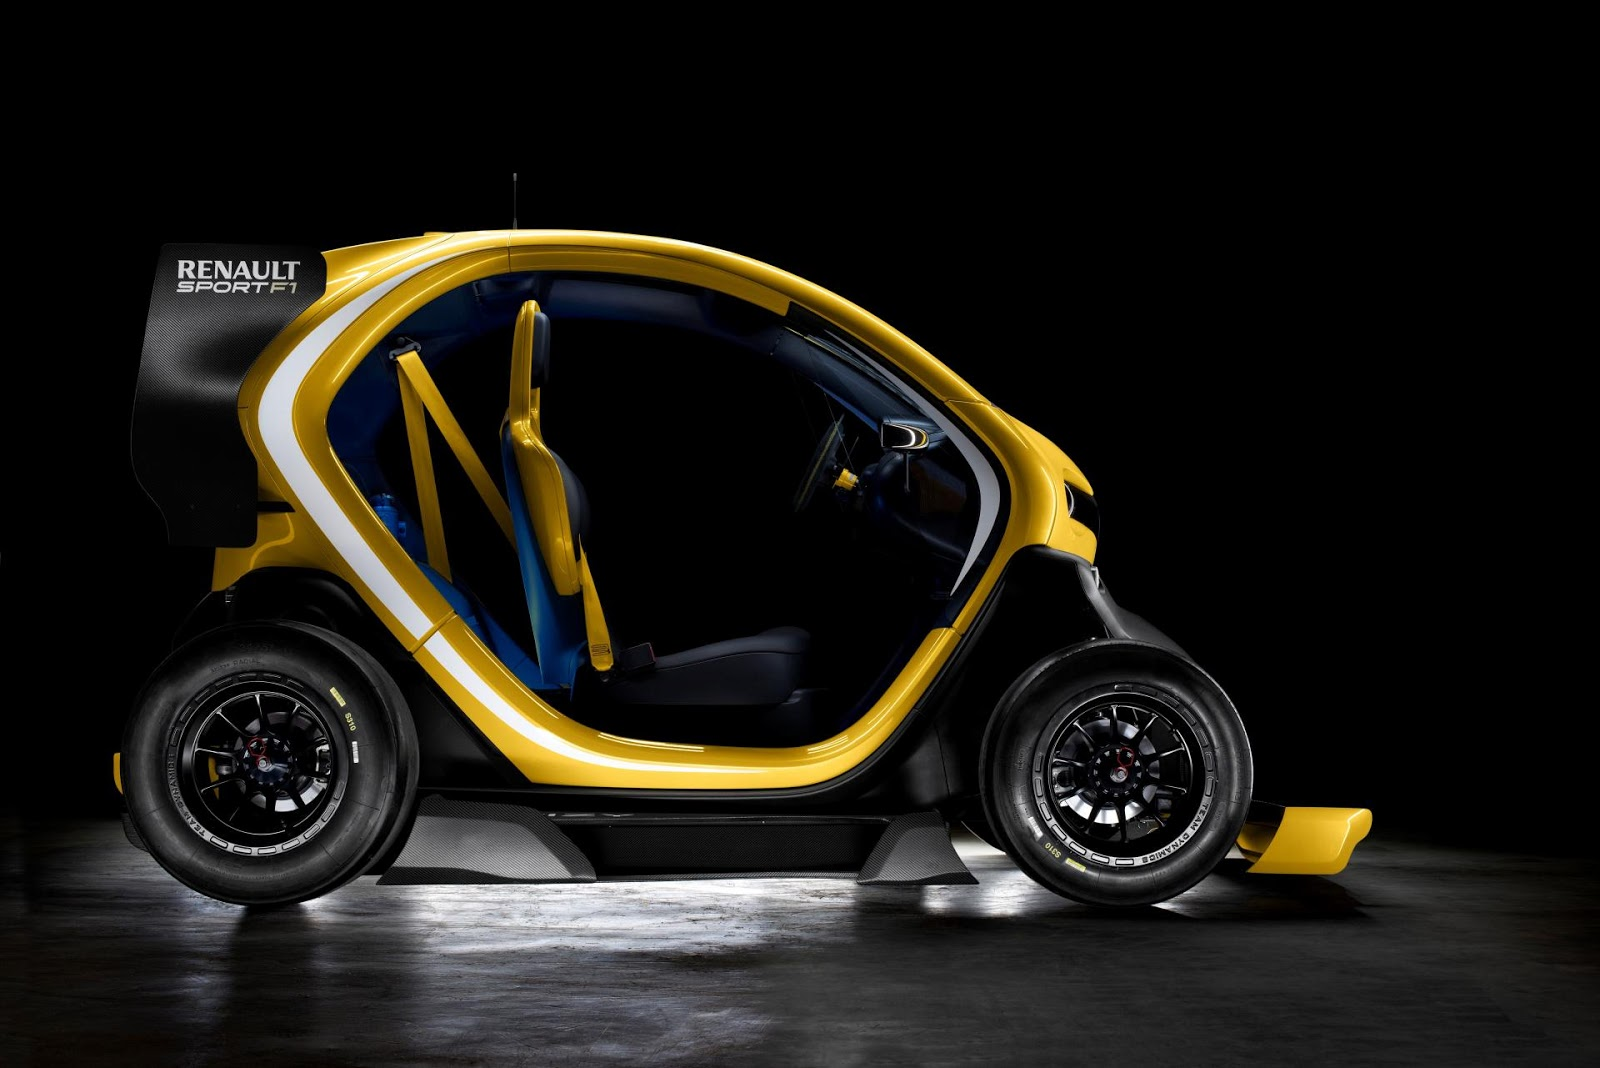 Renault Twizy Rs F1 Concept 2013 Hottest Car Wallpapers Bestgarage